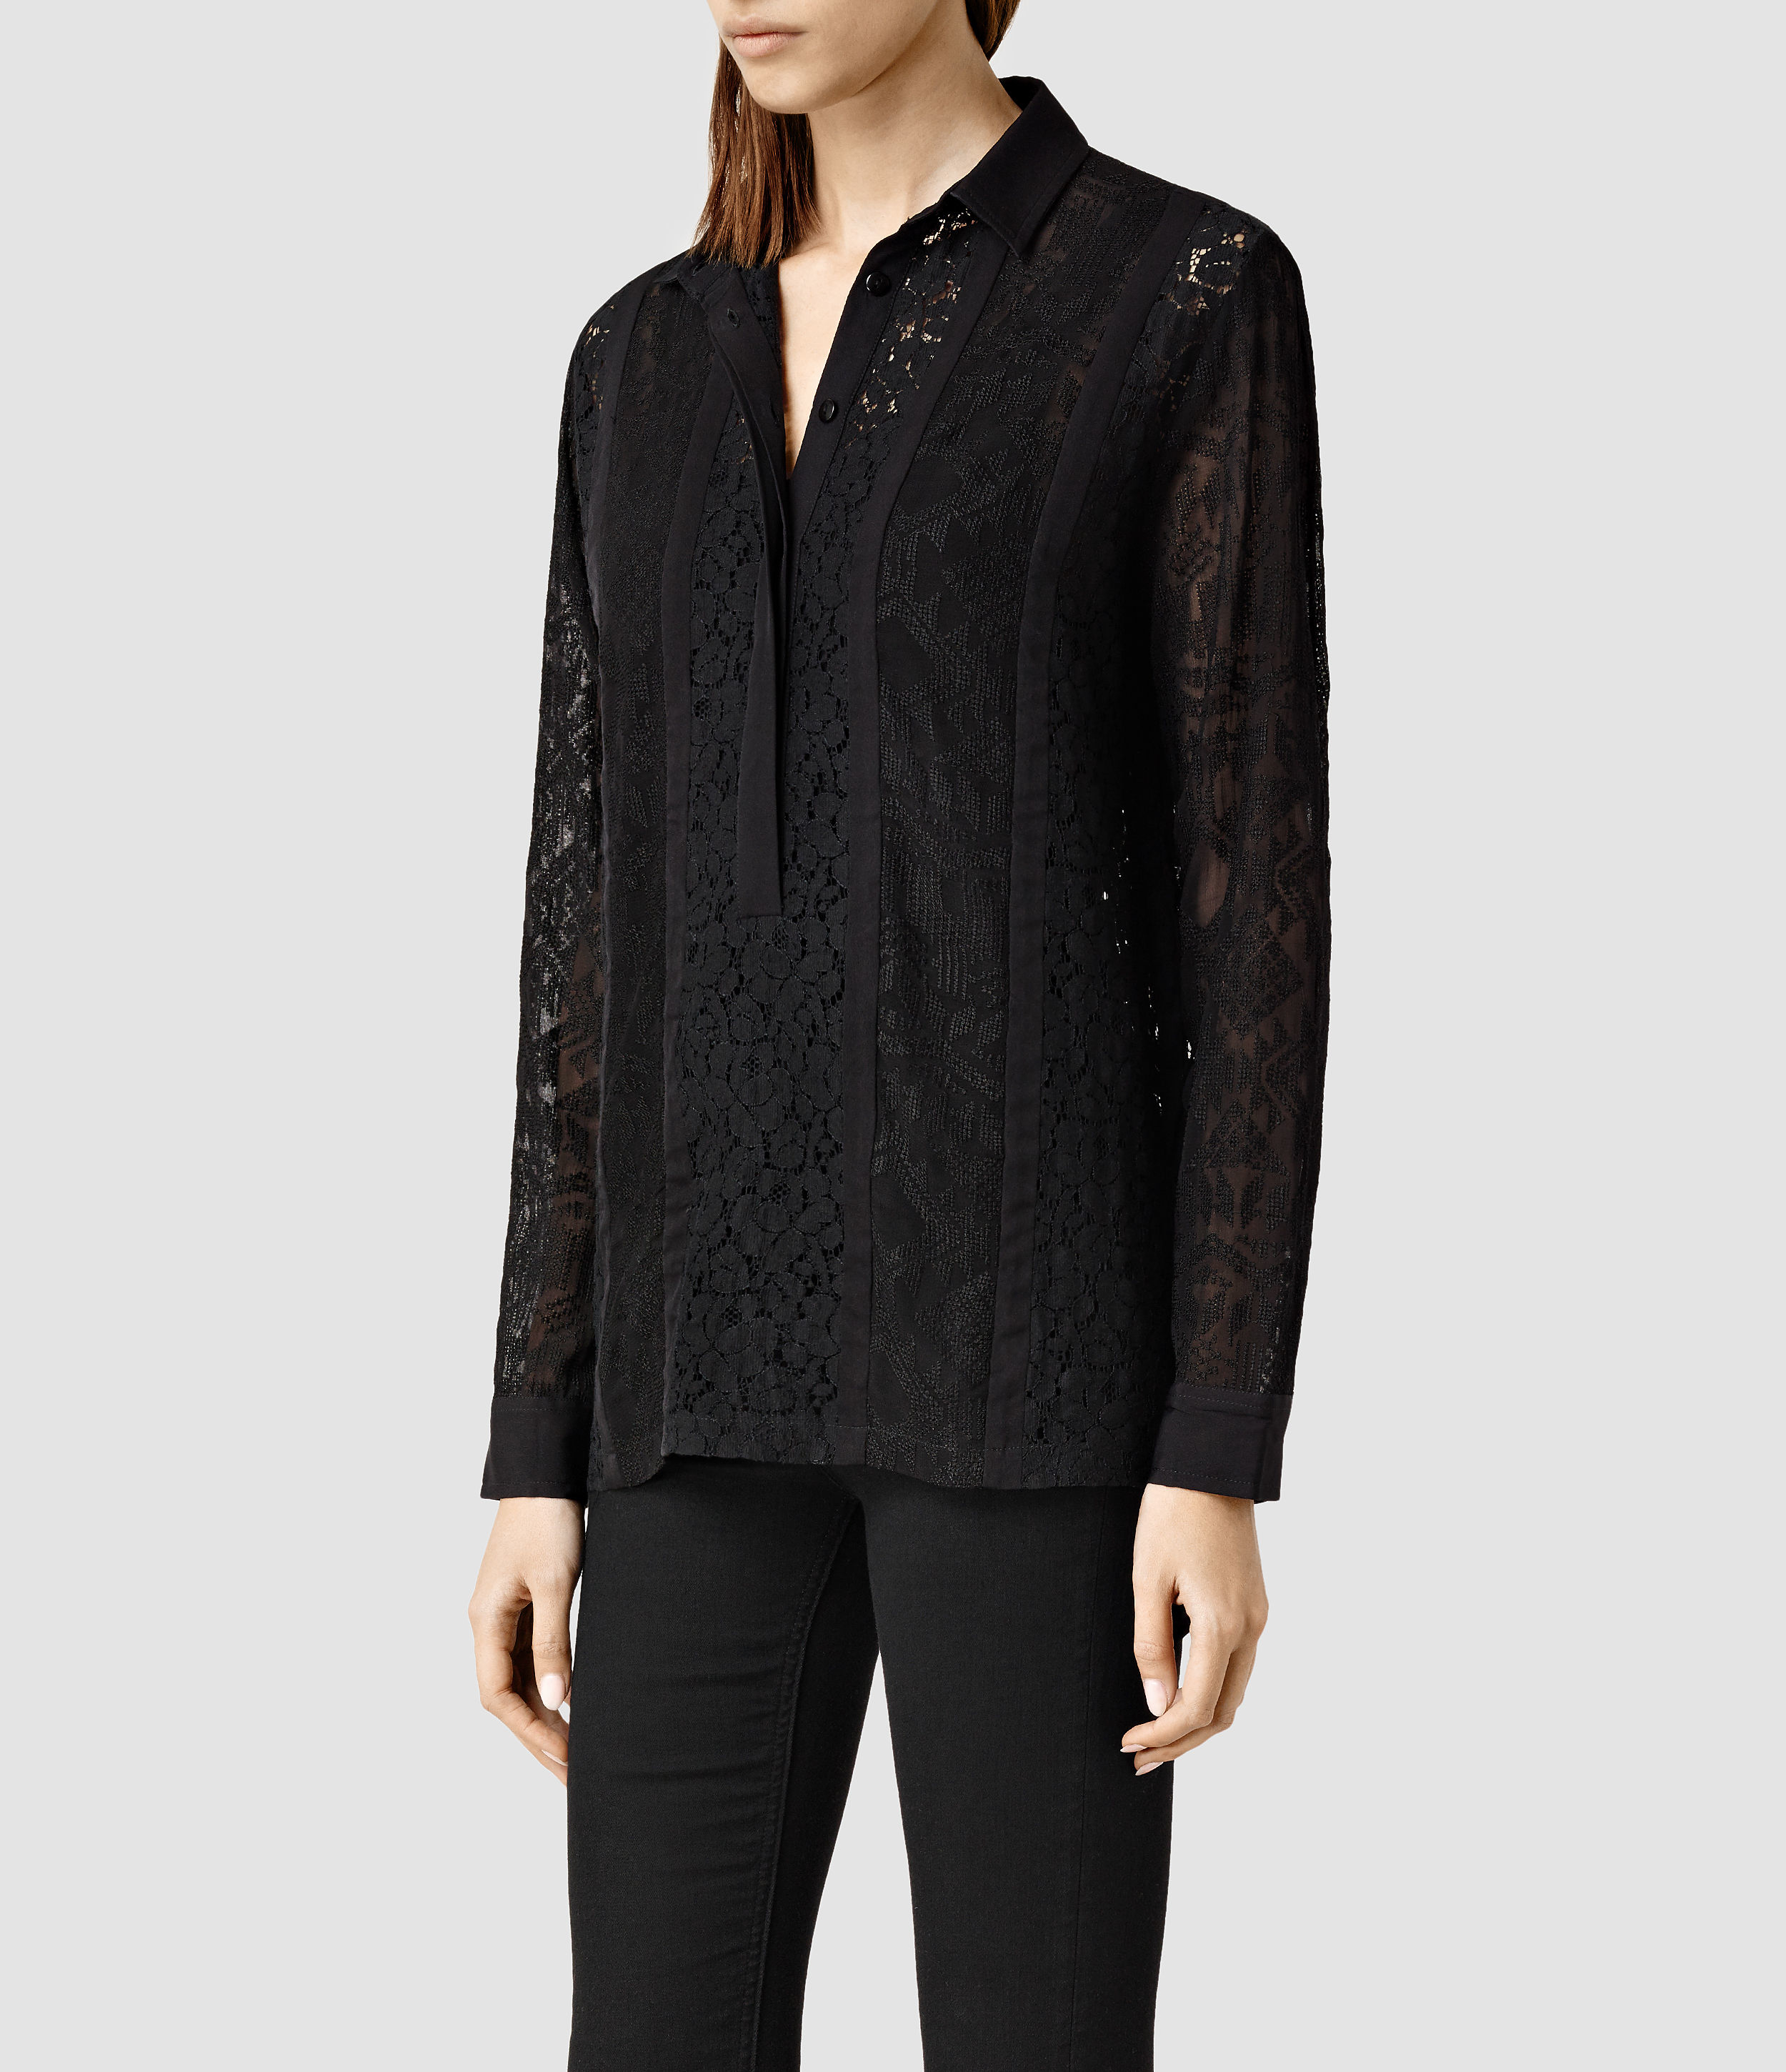 Allsaints Delliance Embroidered Leela Shirt In Black  Lyst